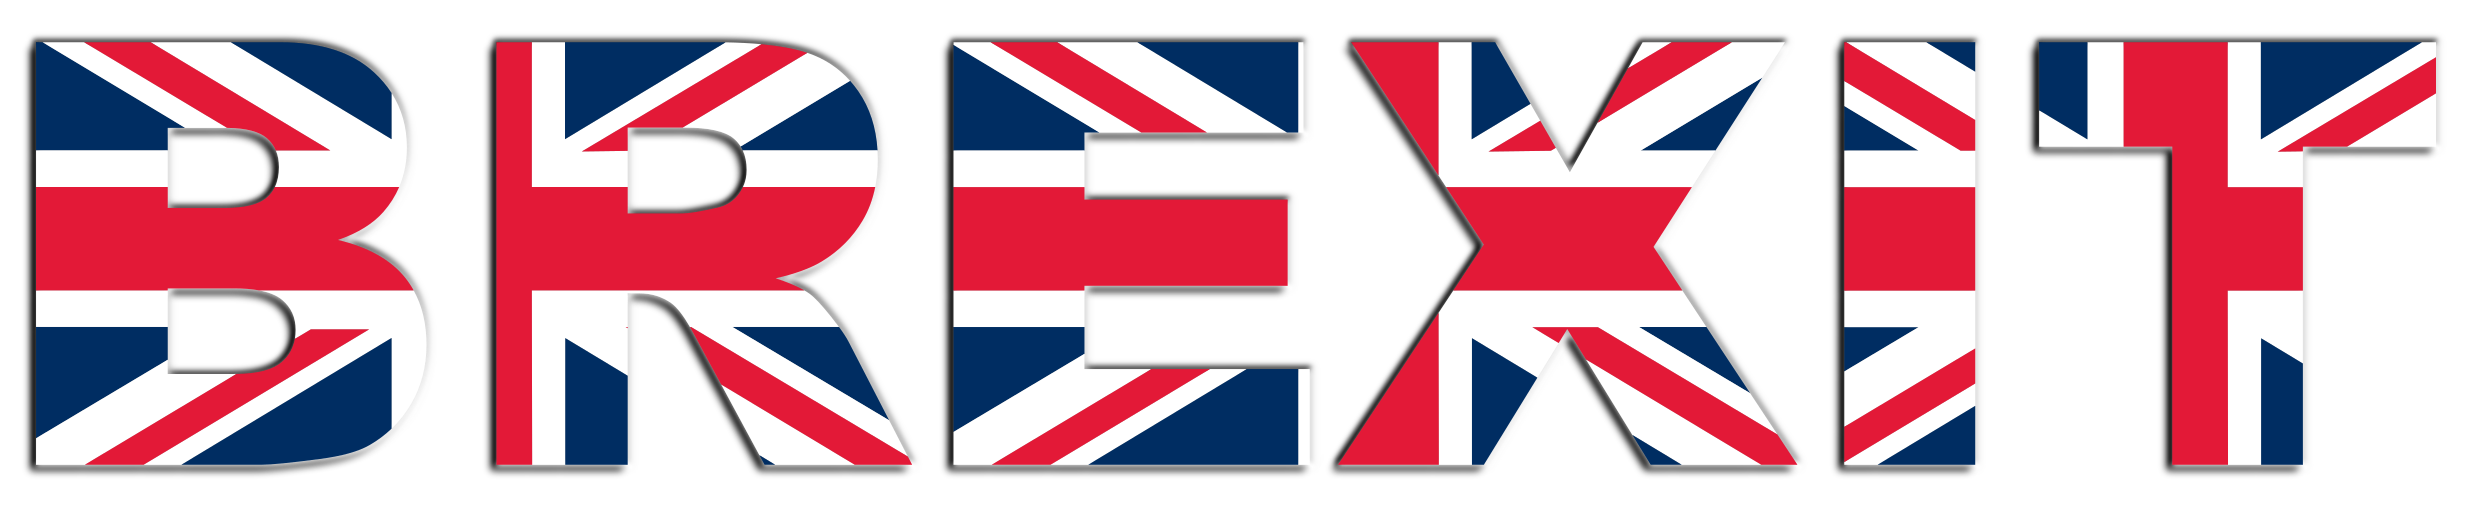 Brexit flags countries u united_kingdom brexit brexit png html